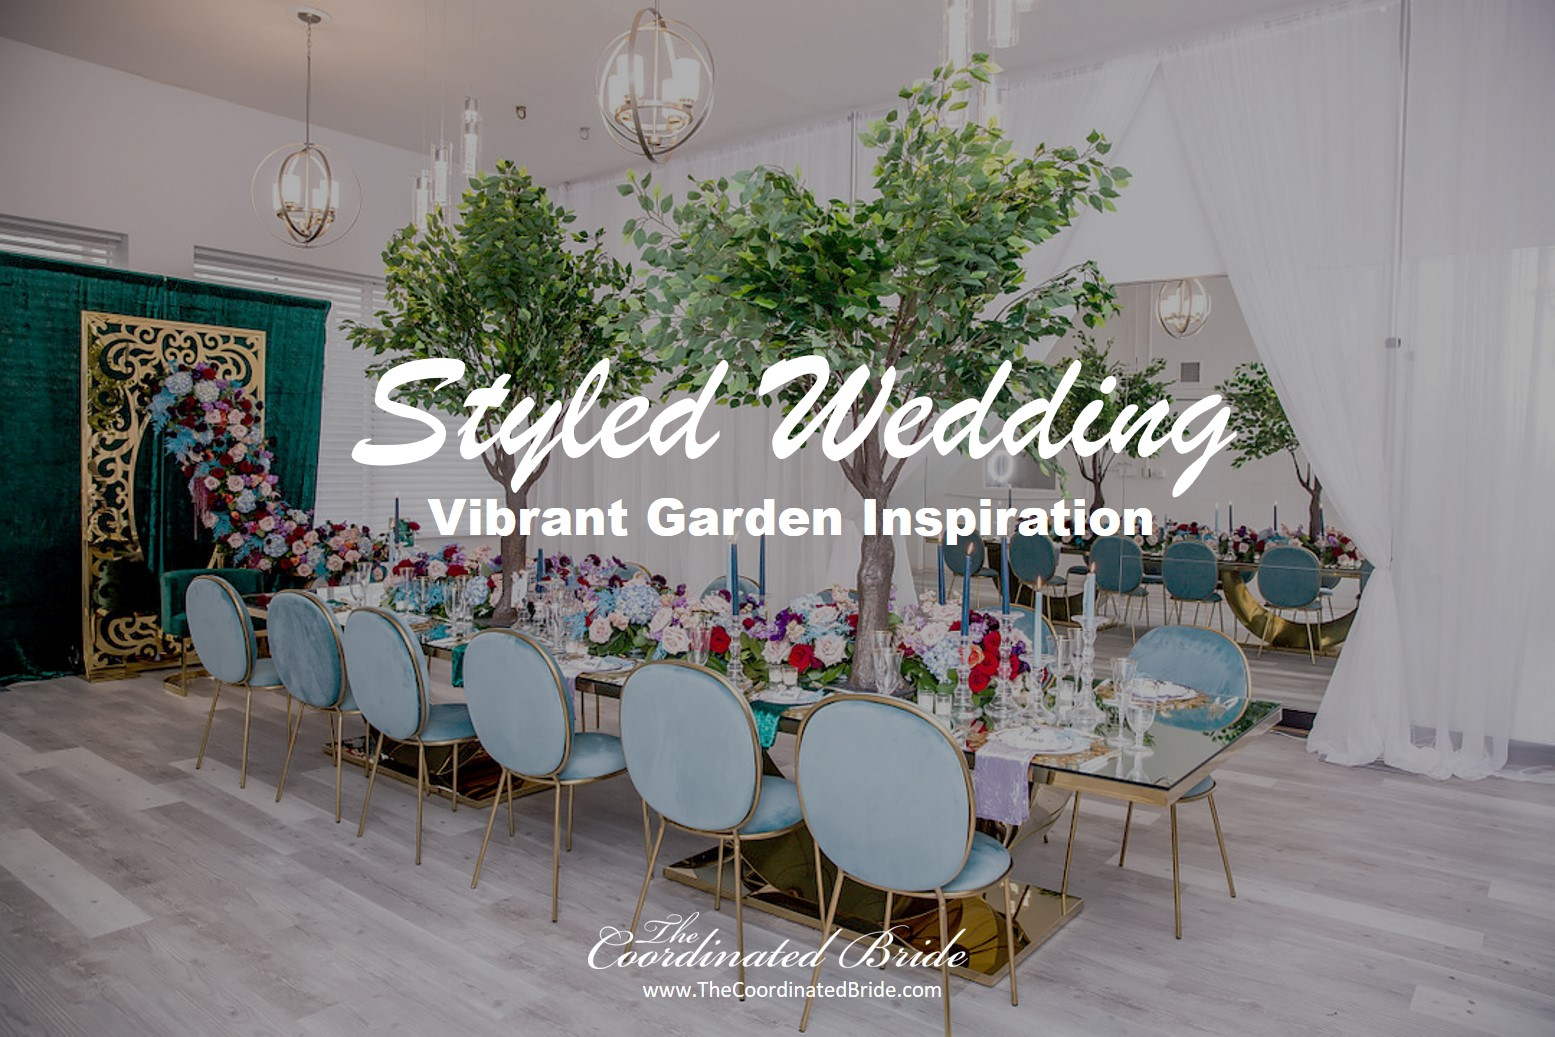 A Vibrant Garden Inspired Styled Micro Wedding